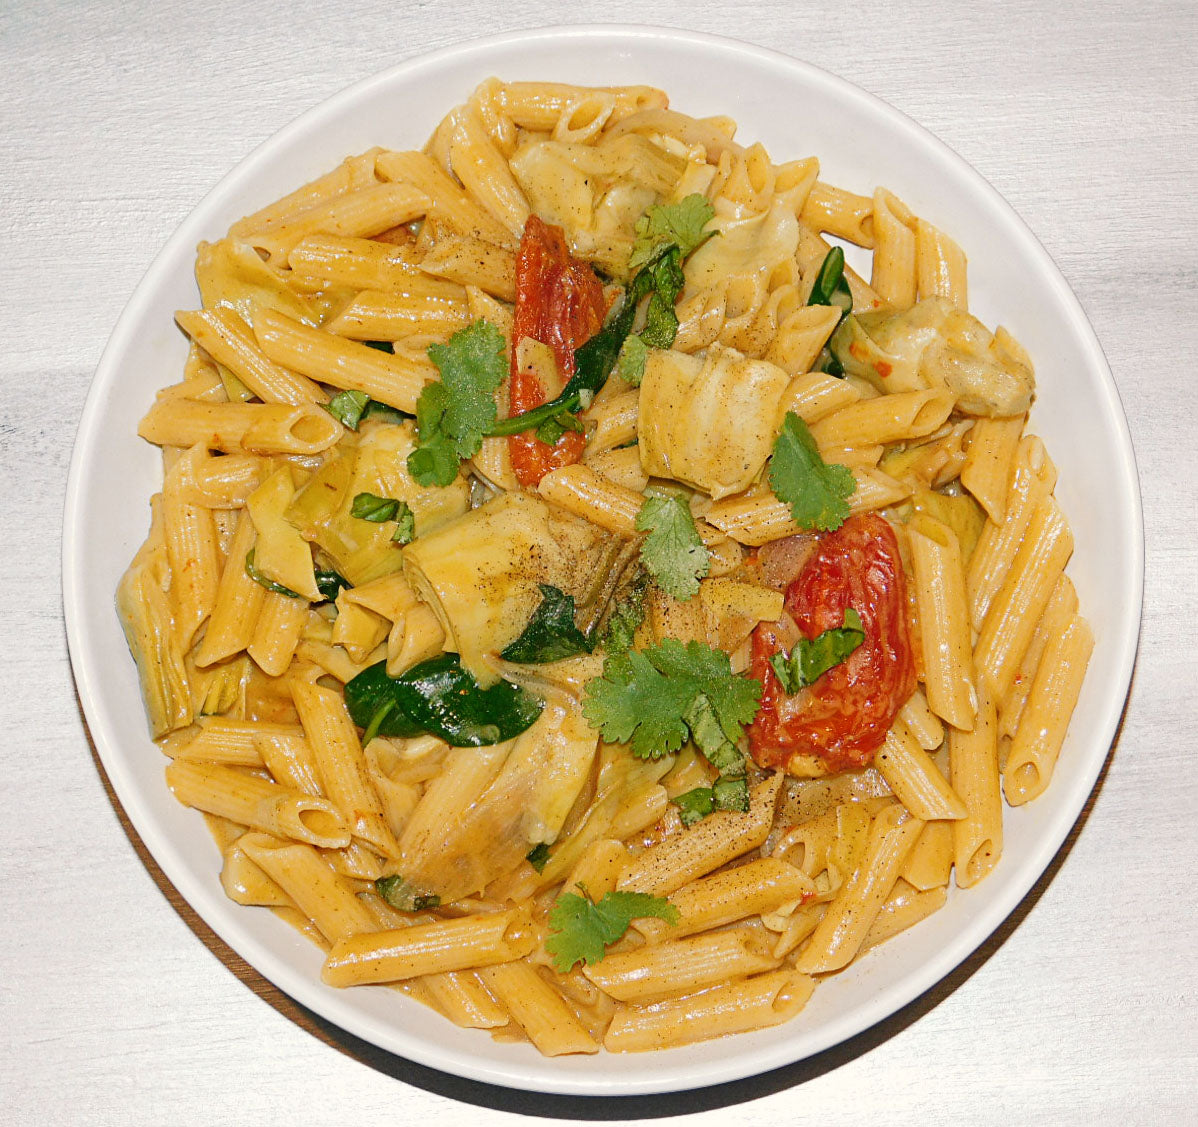 Creamy Artichoke and Sun-dried Tomato Pasta